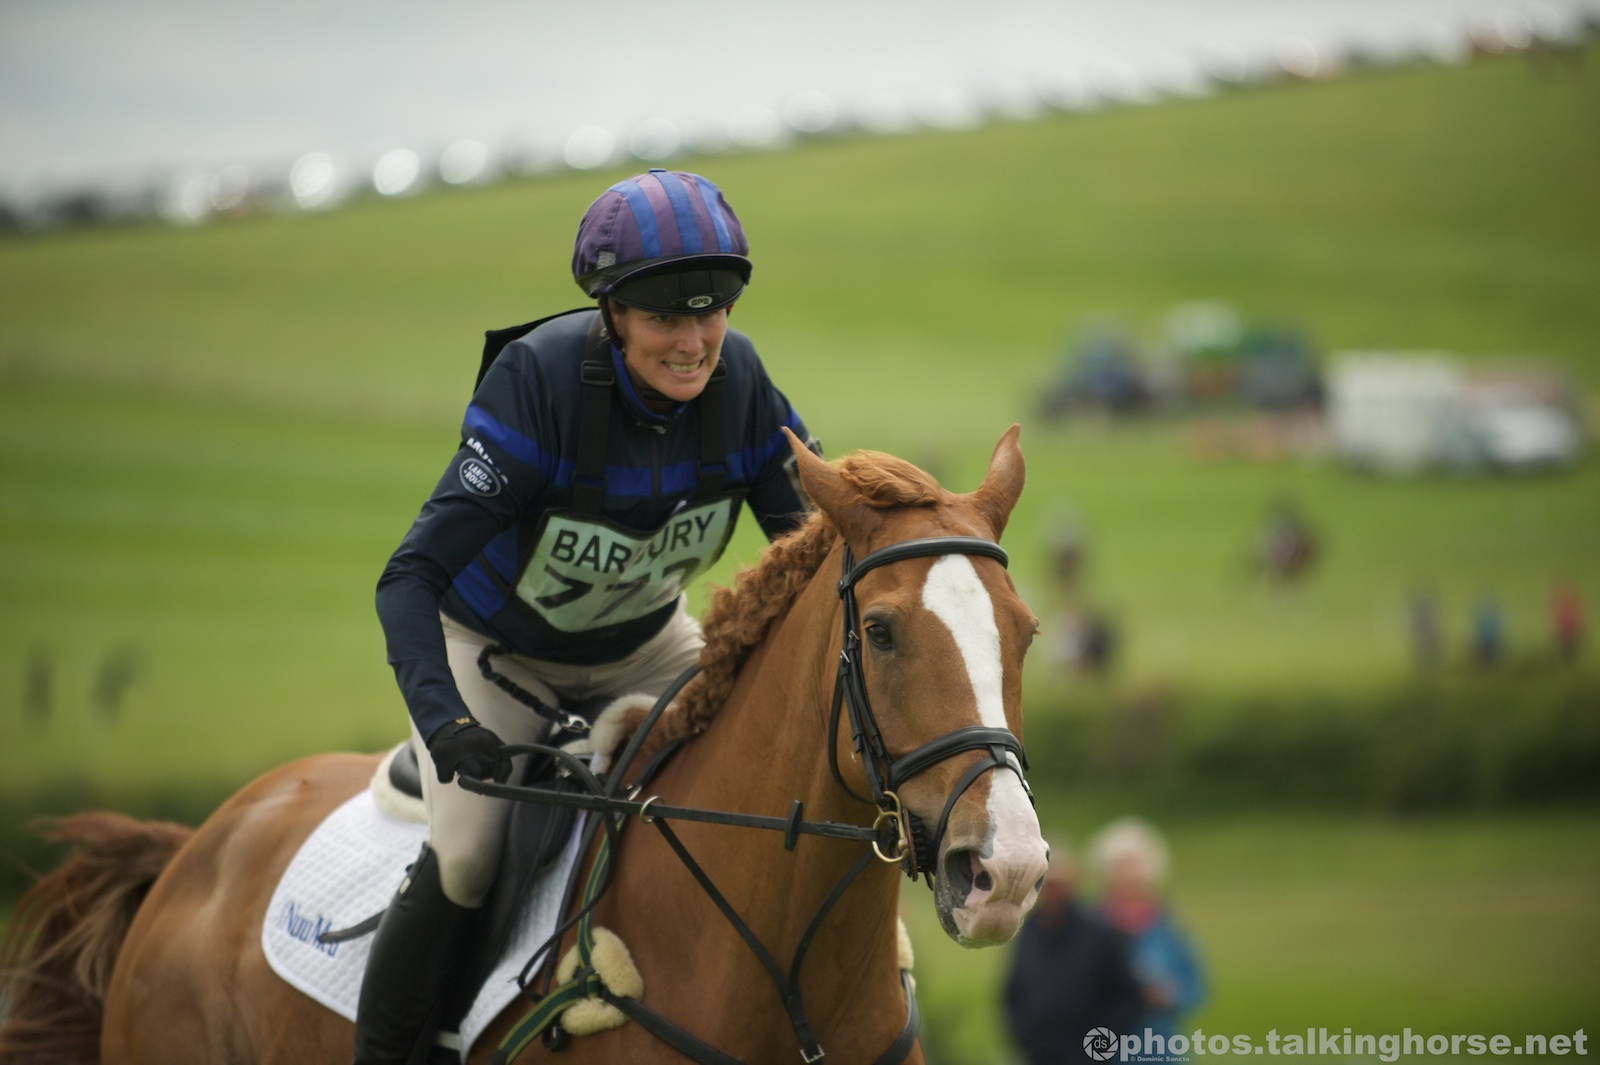 Zara Tindall Had A Frustrating Run-Out In Today's Novice Class